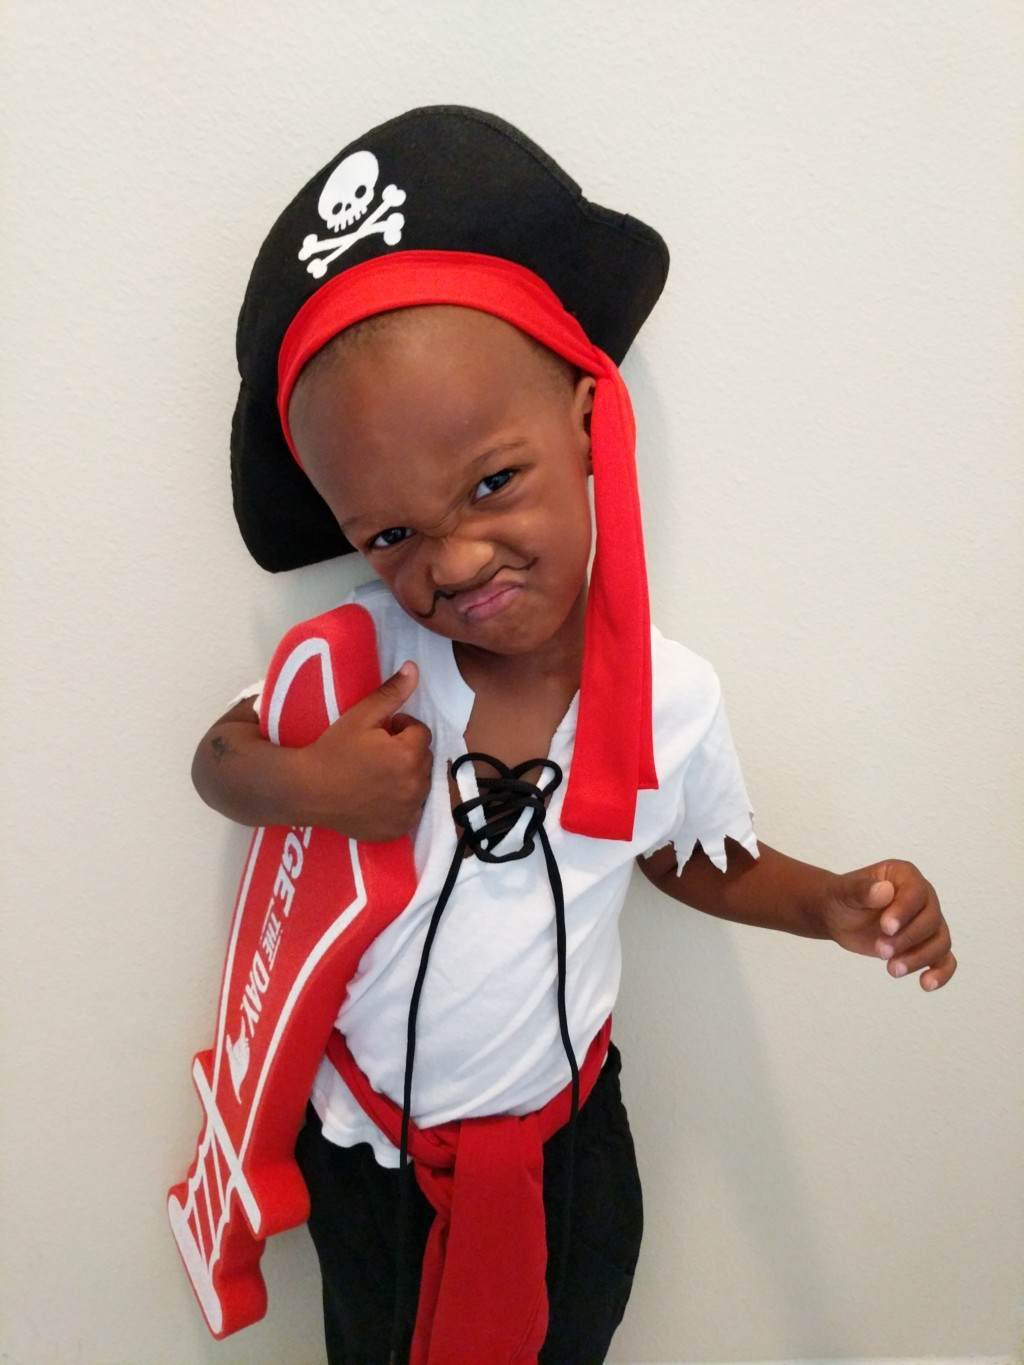 Diy kids halloween costumes that are easy to make on a budget kids pirate costume diy pirate costume for kids solutioingenieria